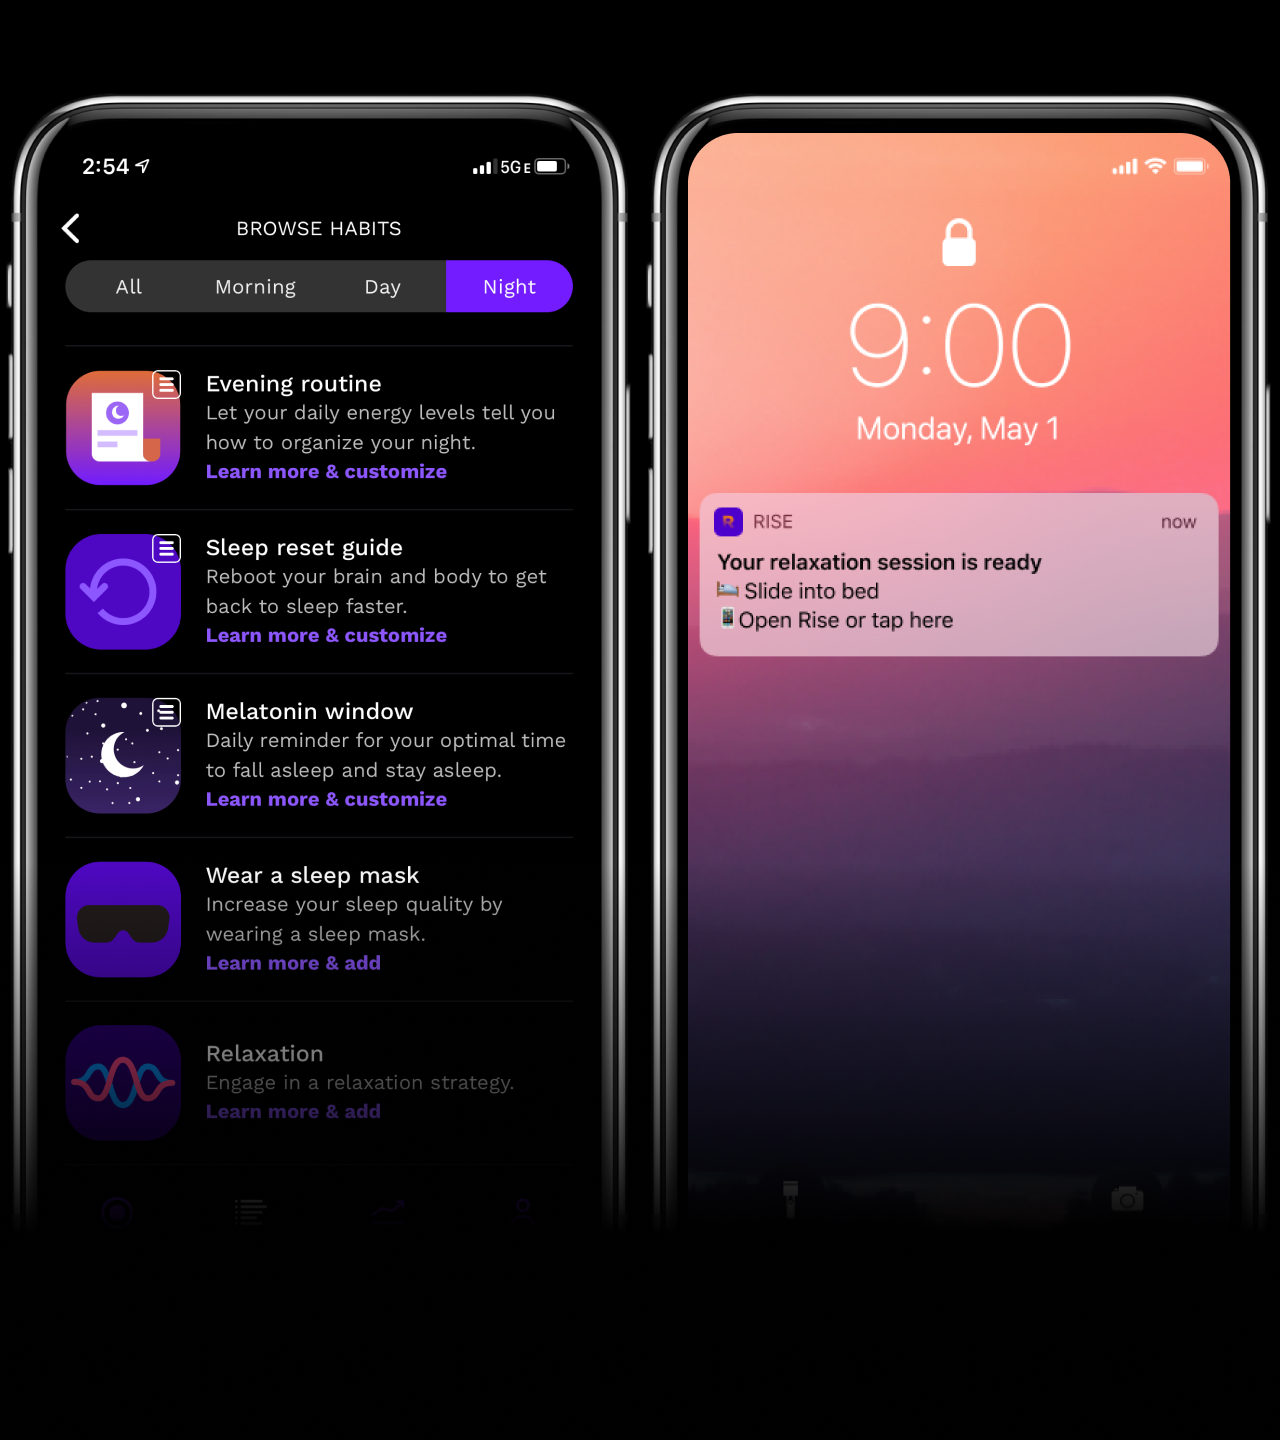 Rise Habits and Notifications